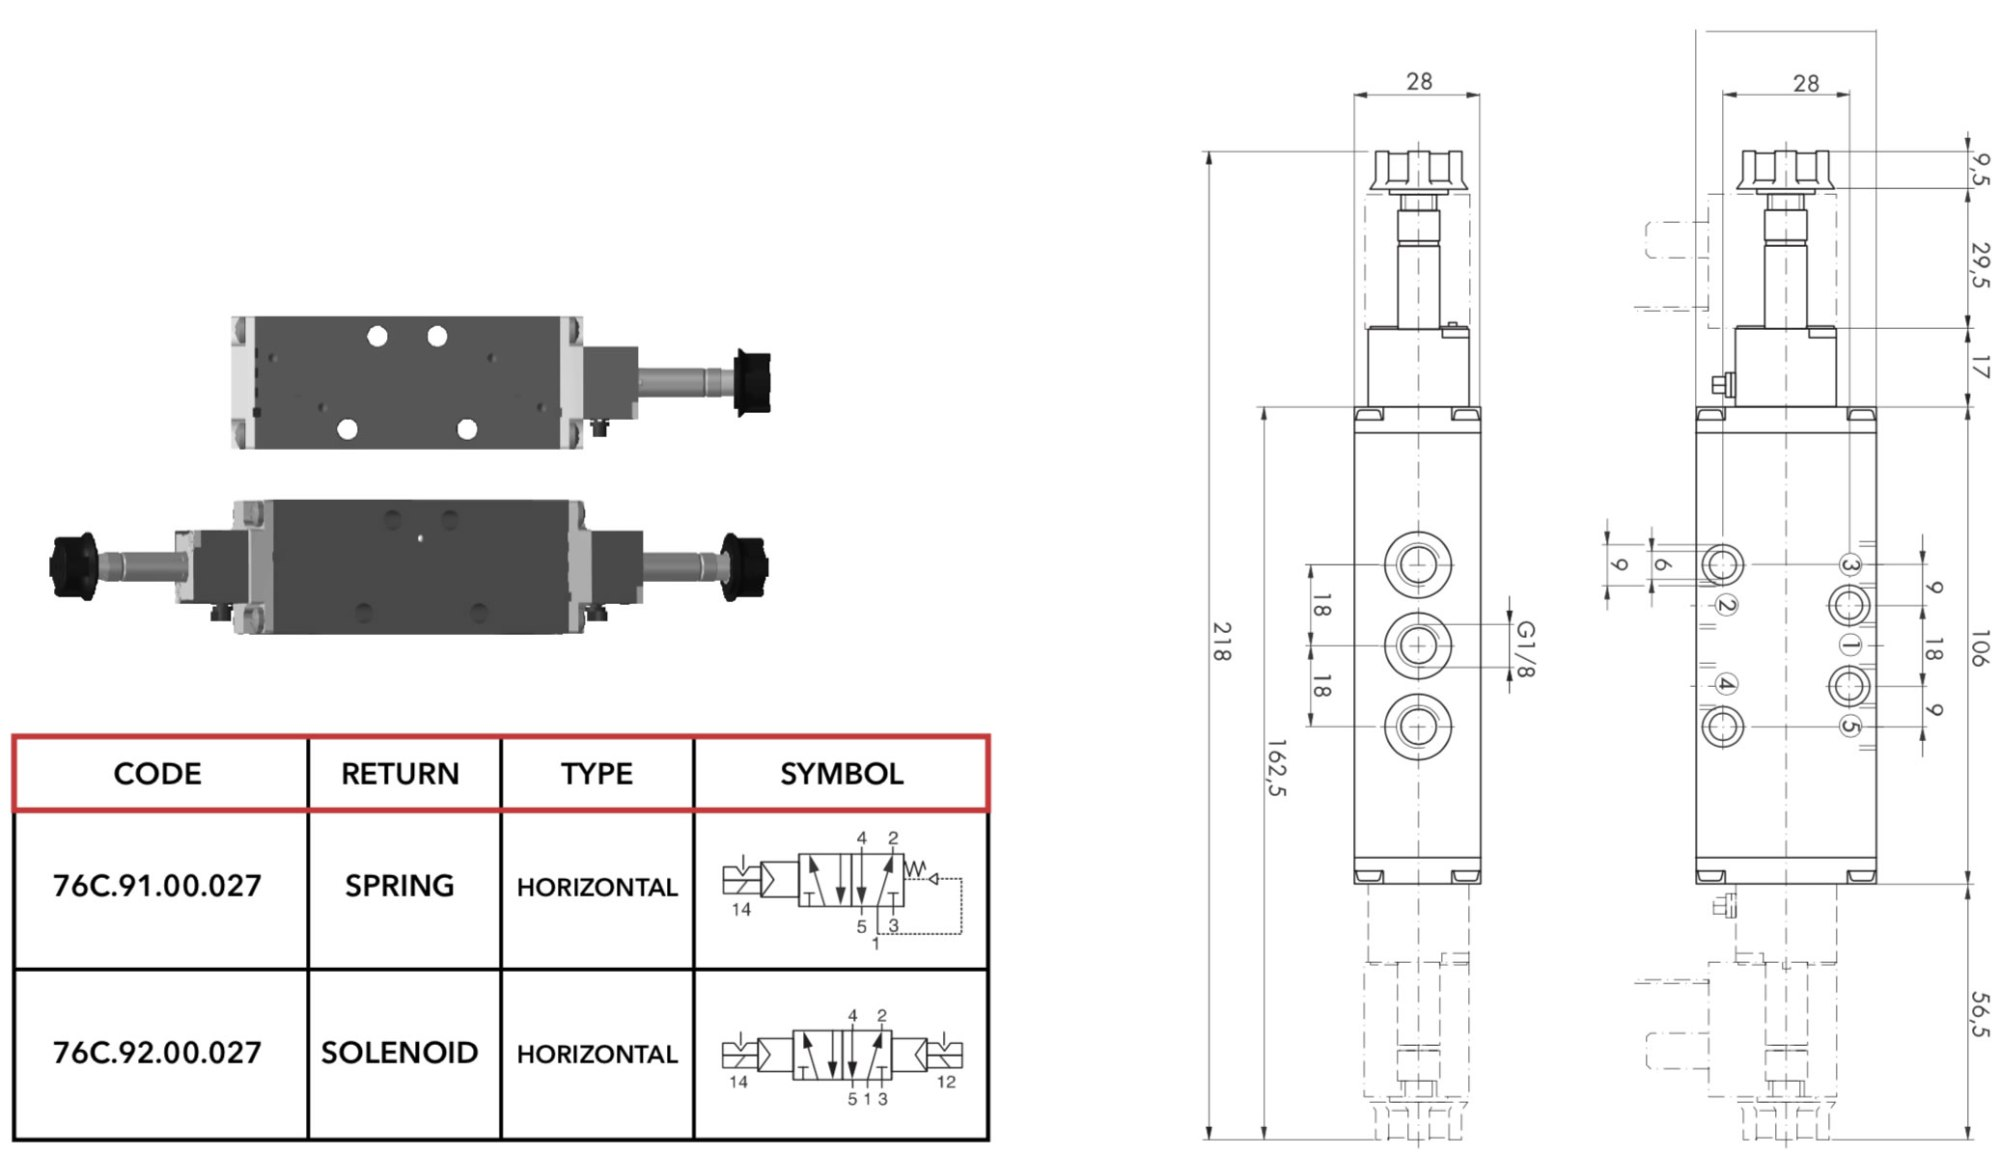 hight resolution of 76c 5 2 way poppet valves g1 8 dnom 6mm actuation solenoid manual override